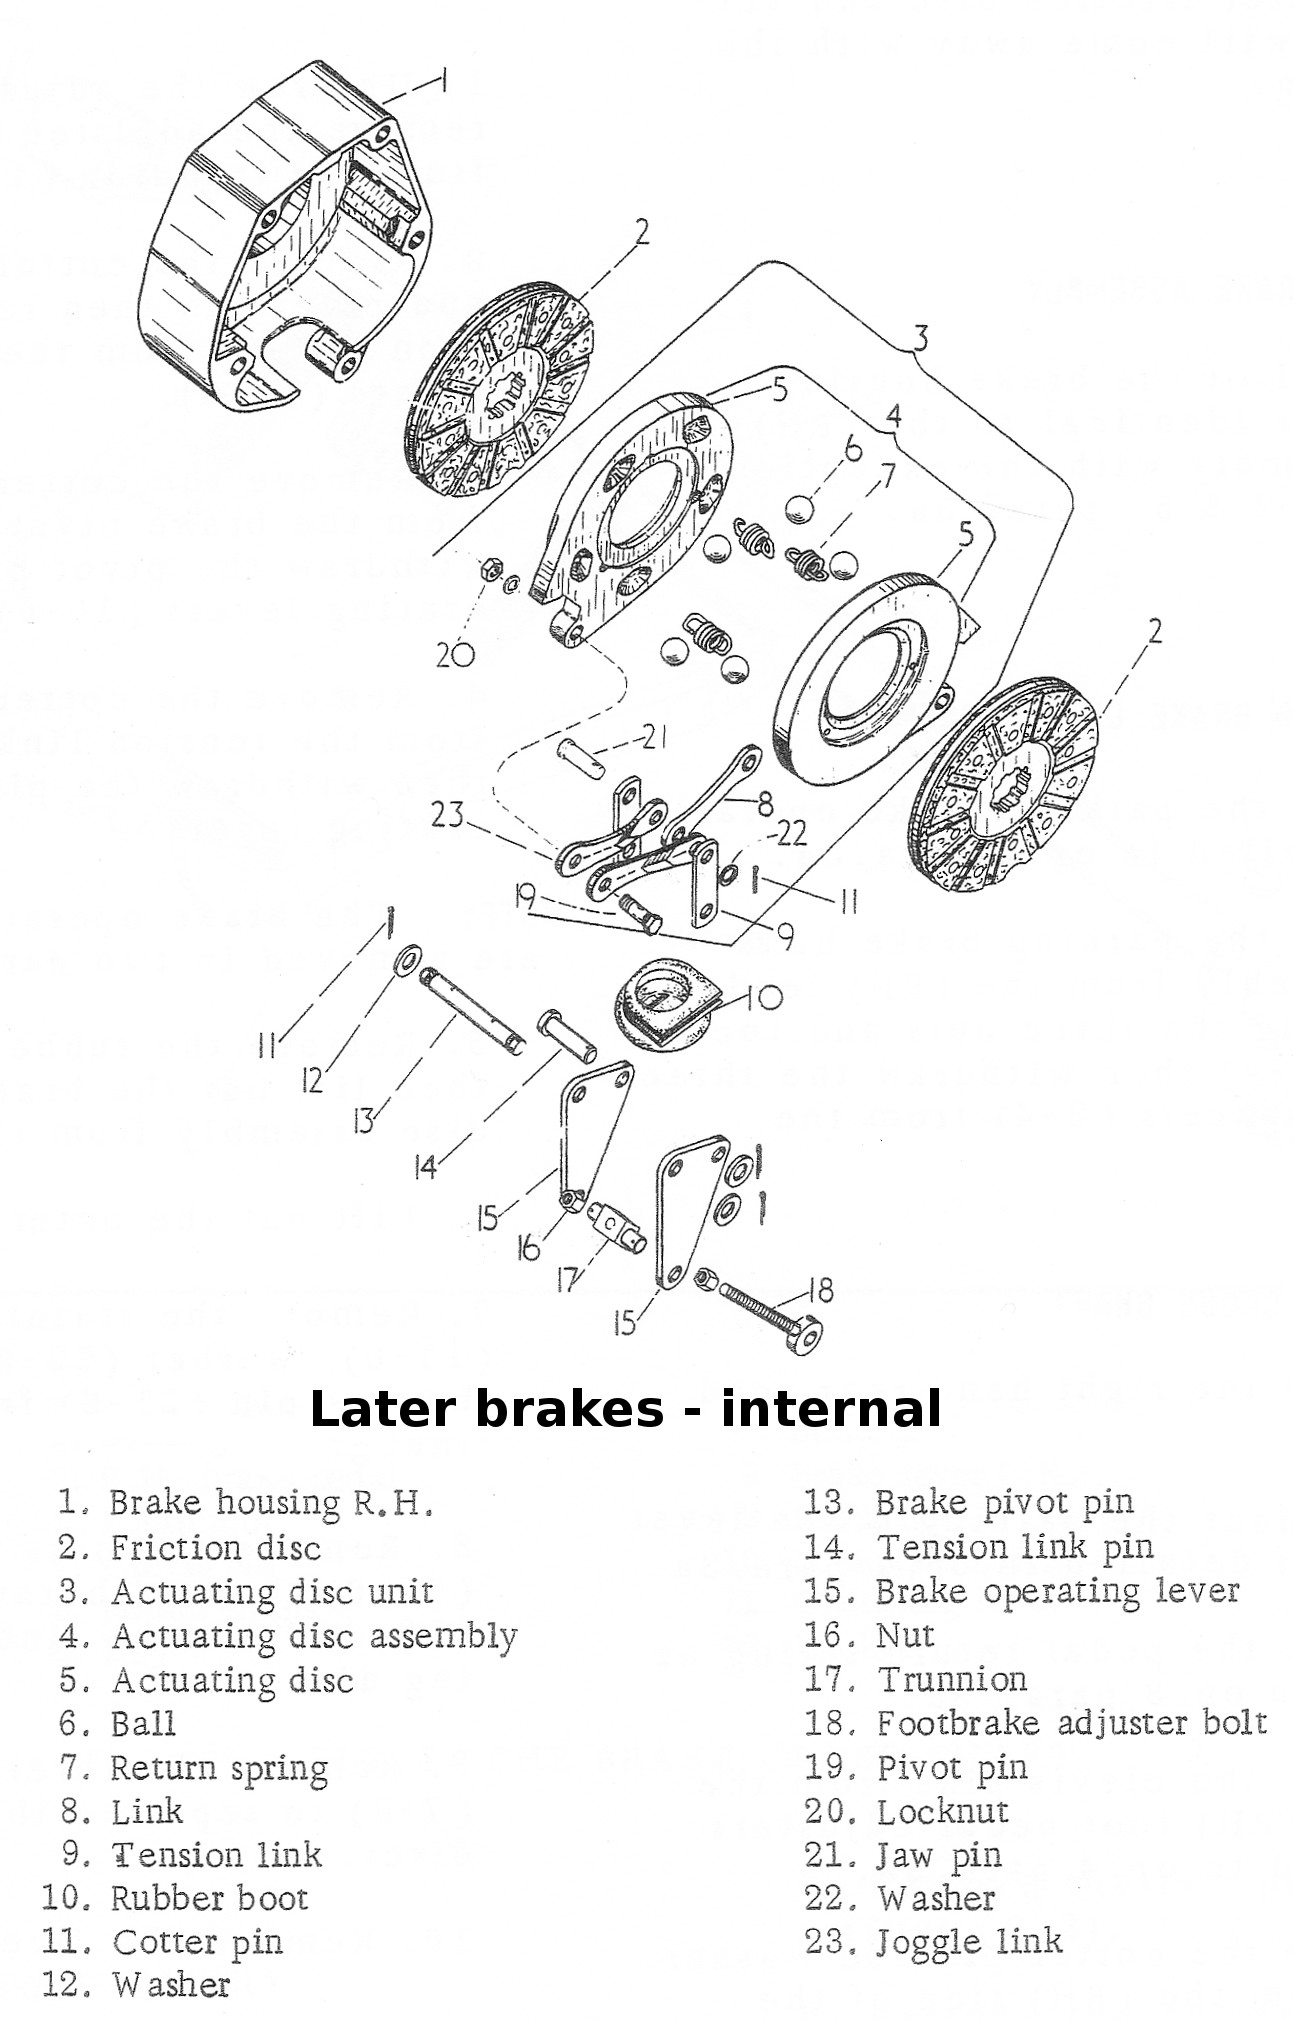 Later brakes - exploded parts diagram